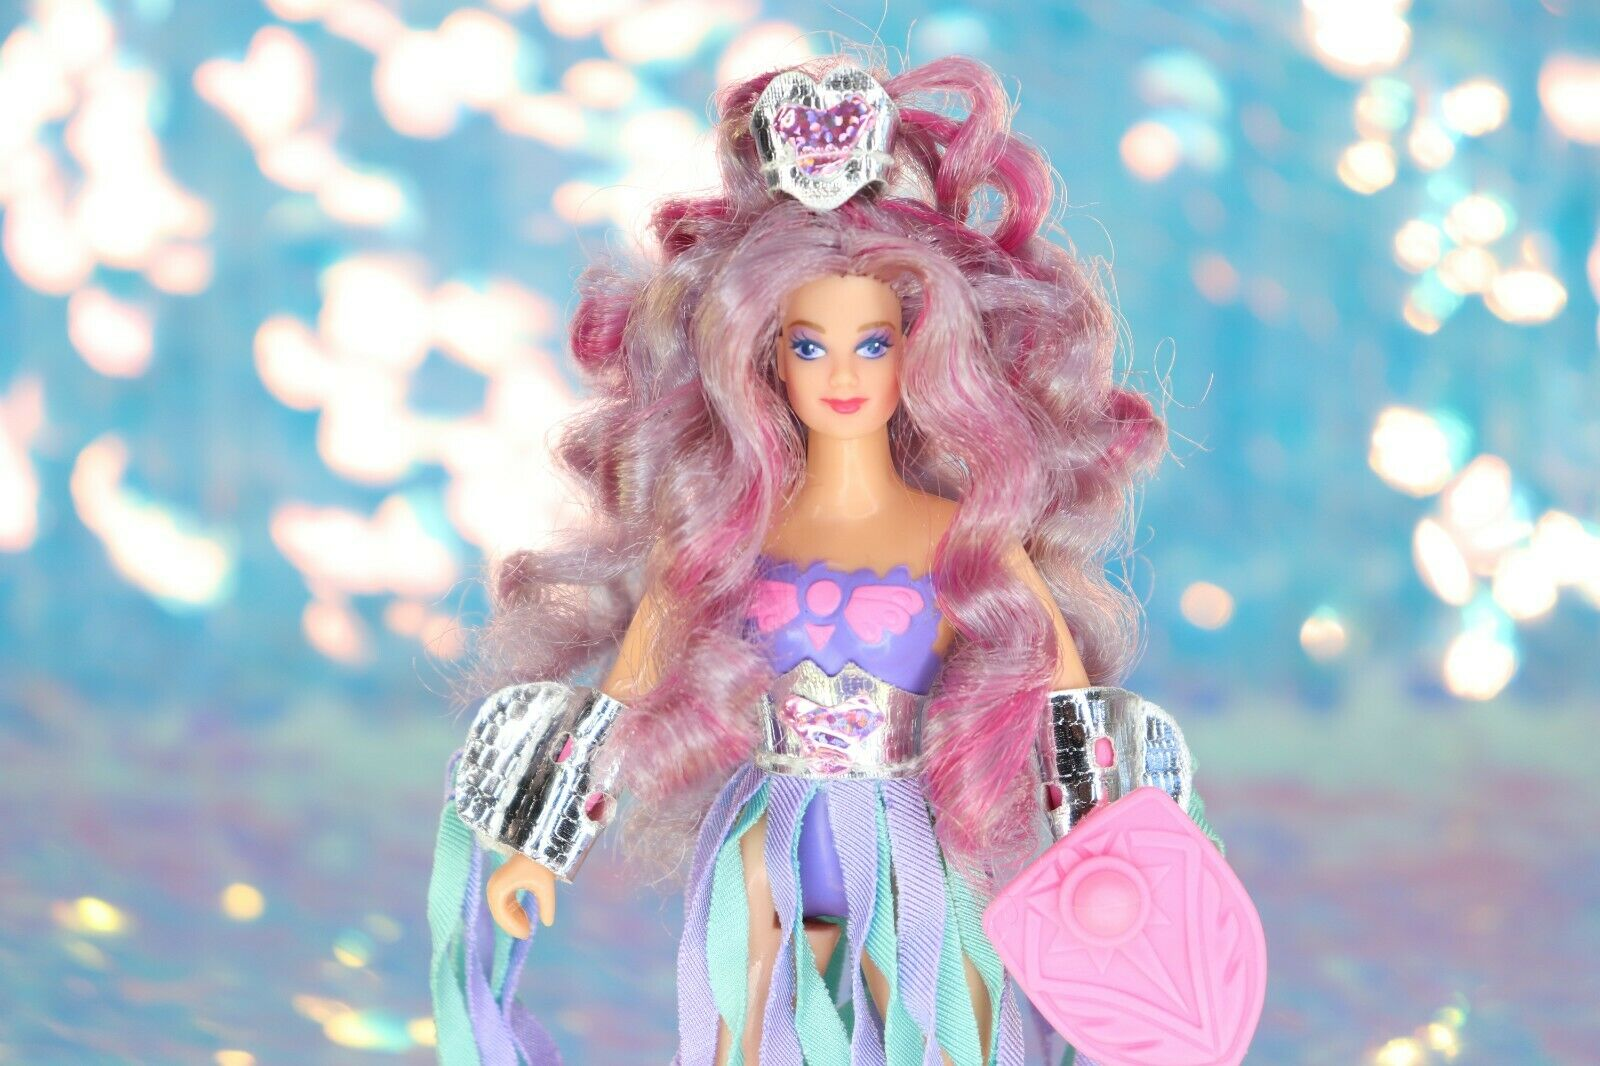 Power-Con 2016: Meet She-Ra, the Mattel MOTU Exclusive for